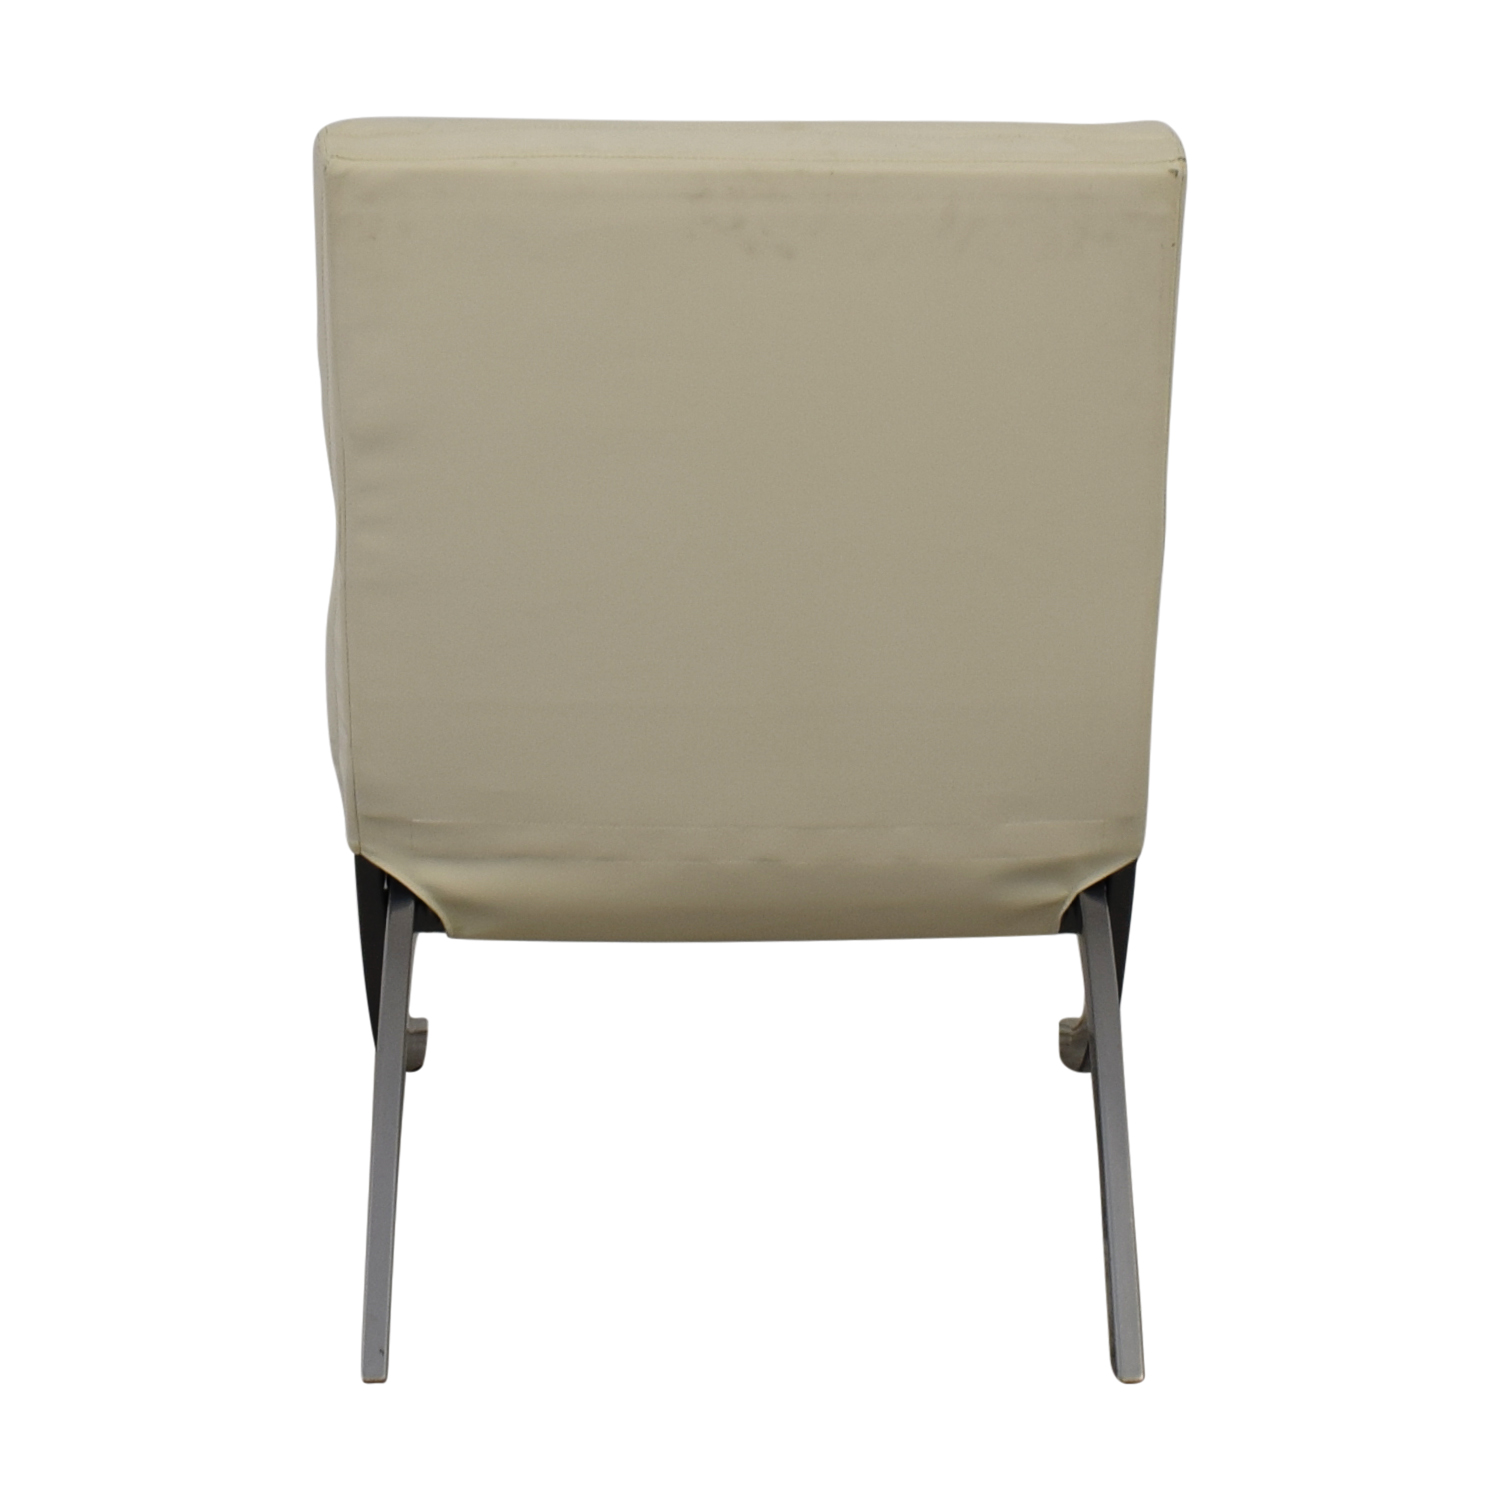 Dimensions Dimensions White Leather Accent Chair Chairs